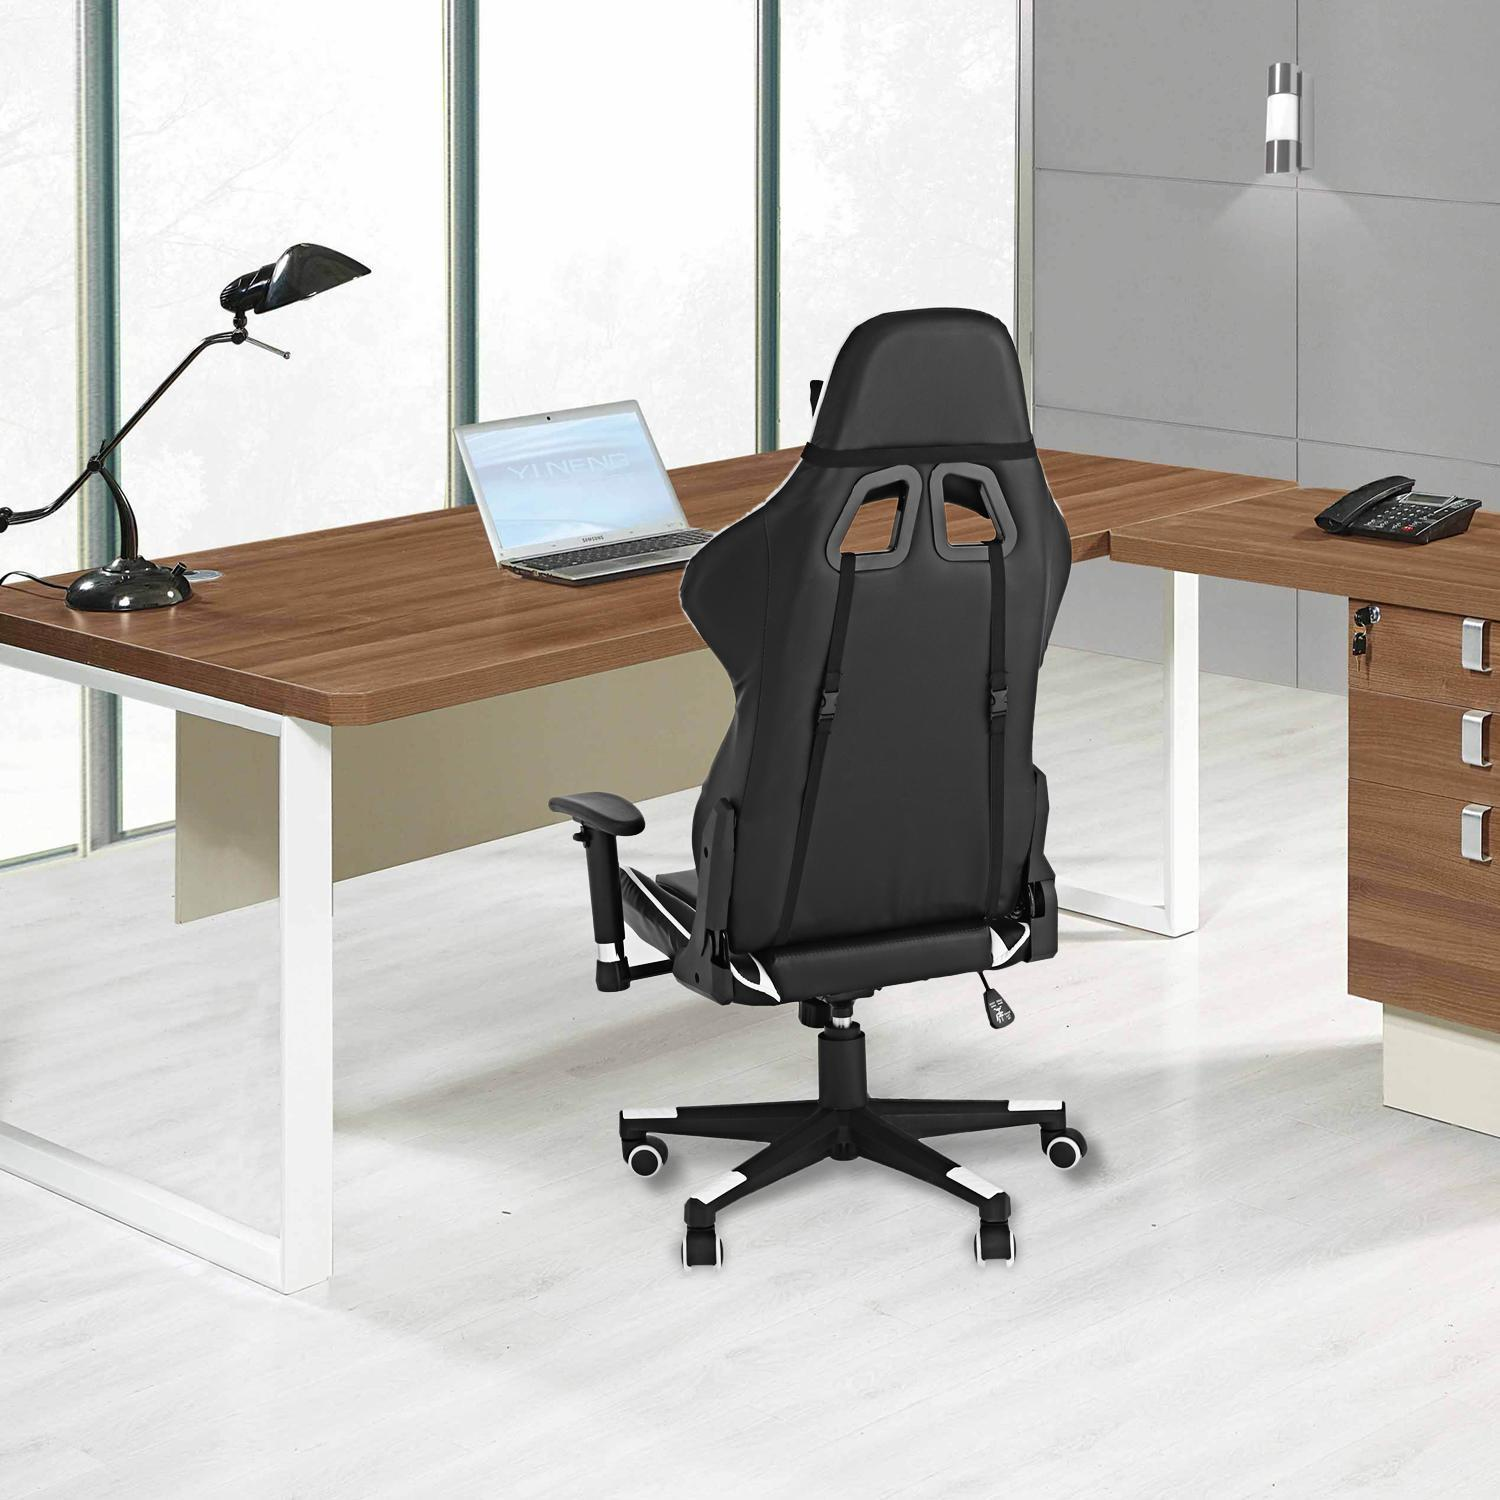 Office Chair with Armrests Ergonomic PU Padded High-Back Executive Chair ,Adjustable SPHP